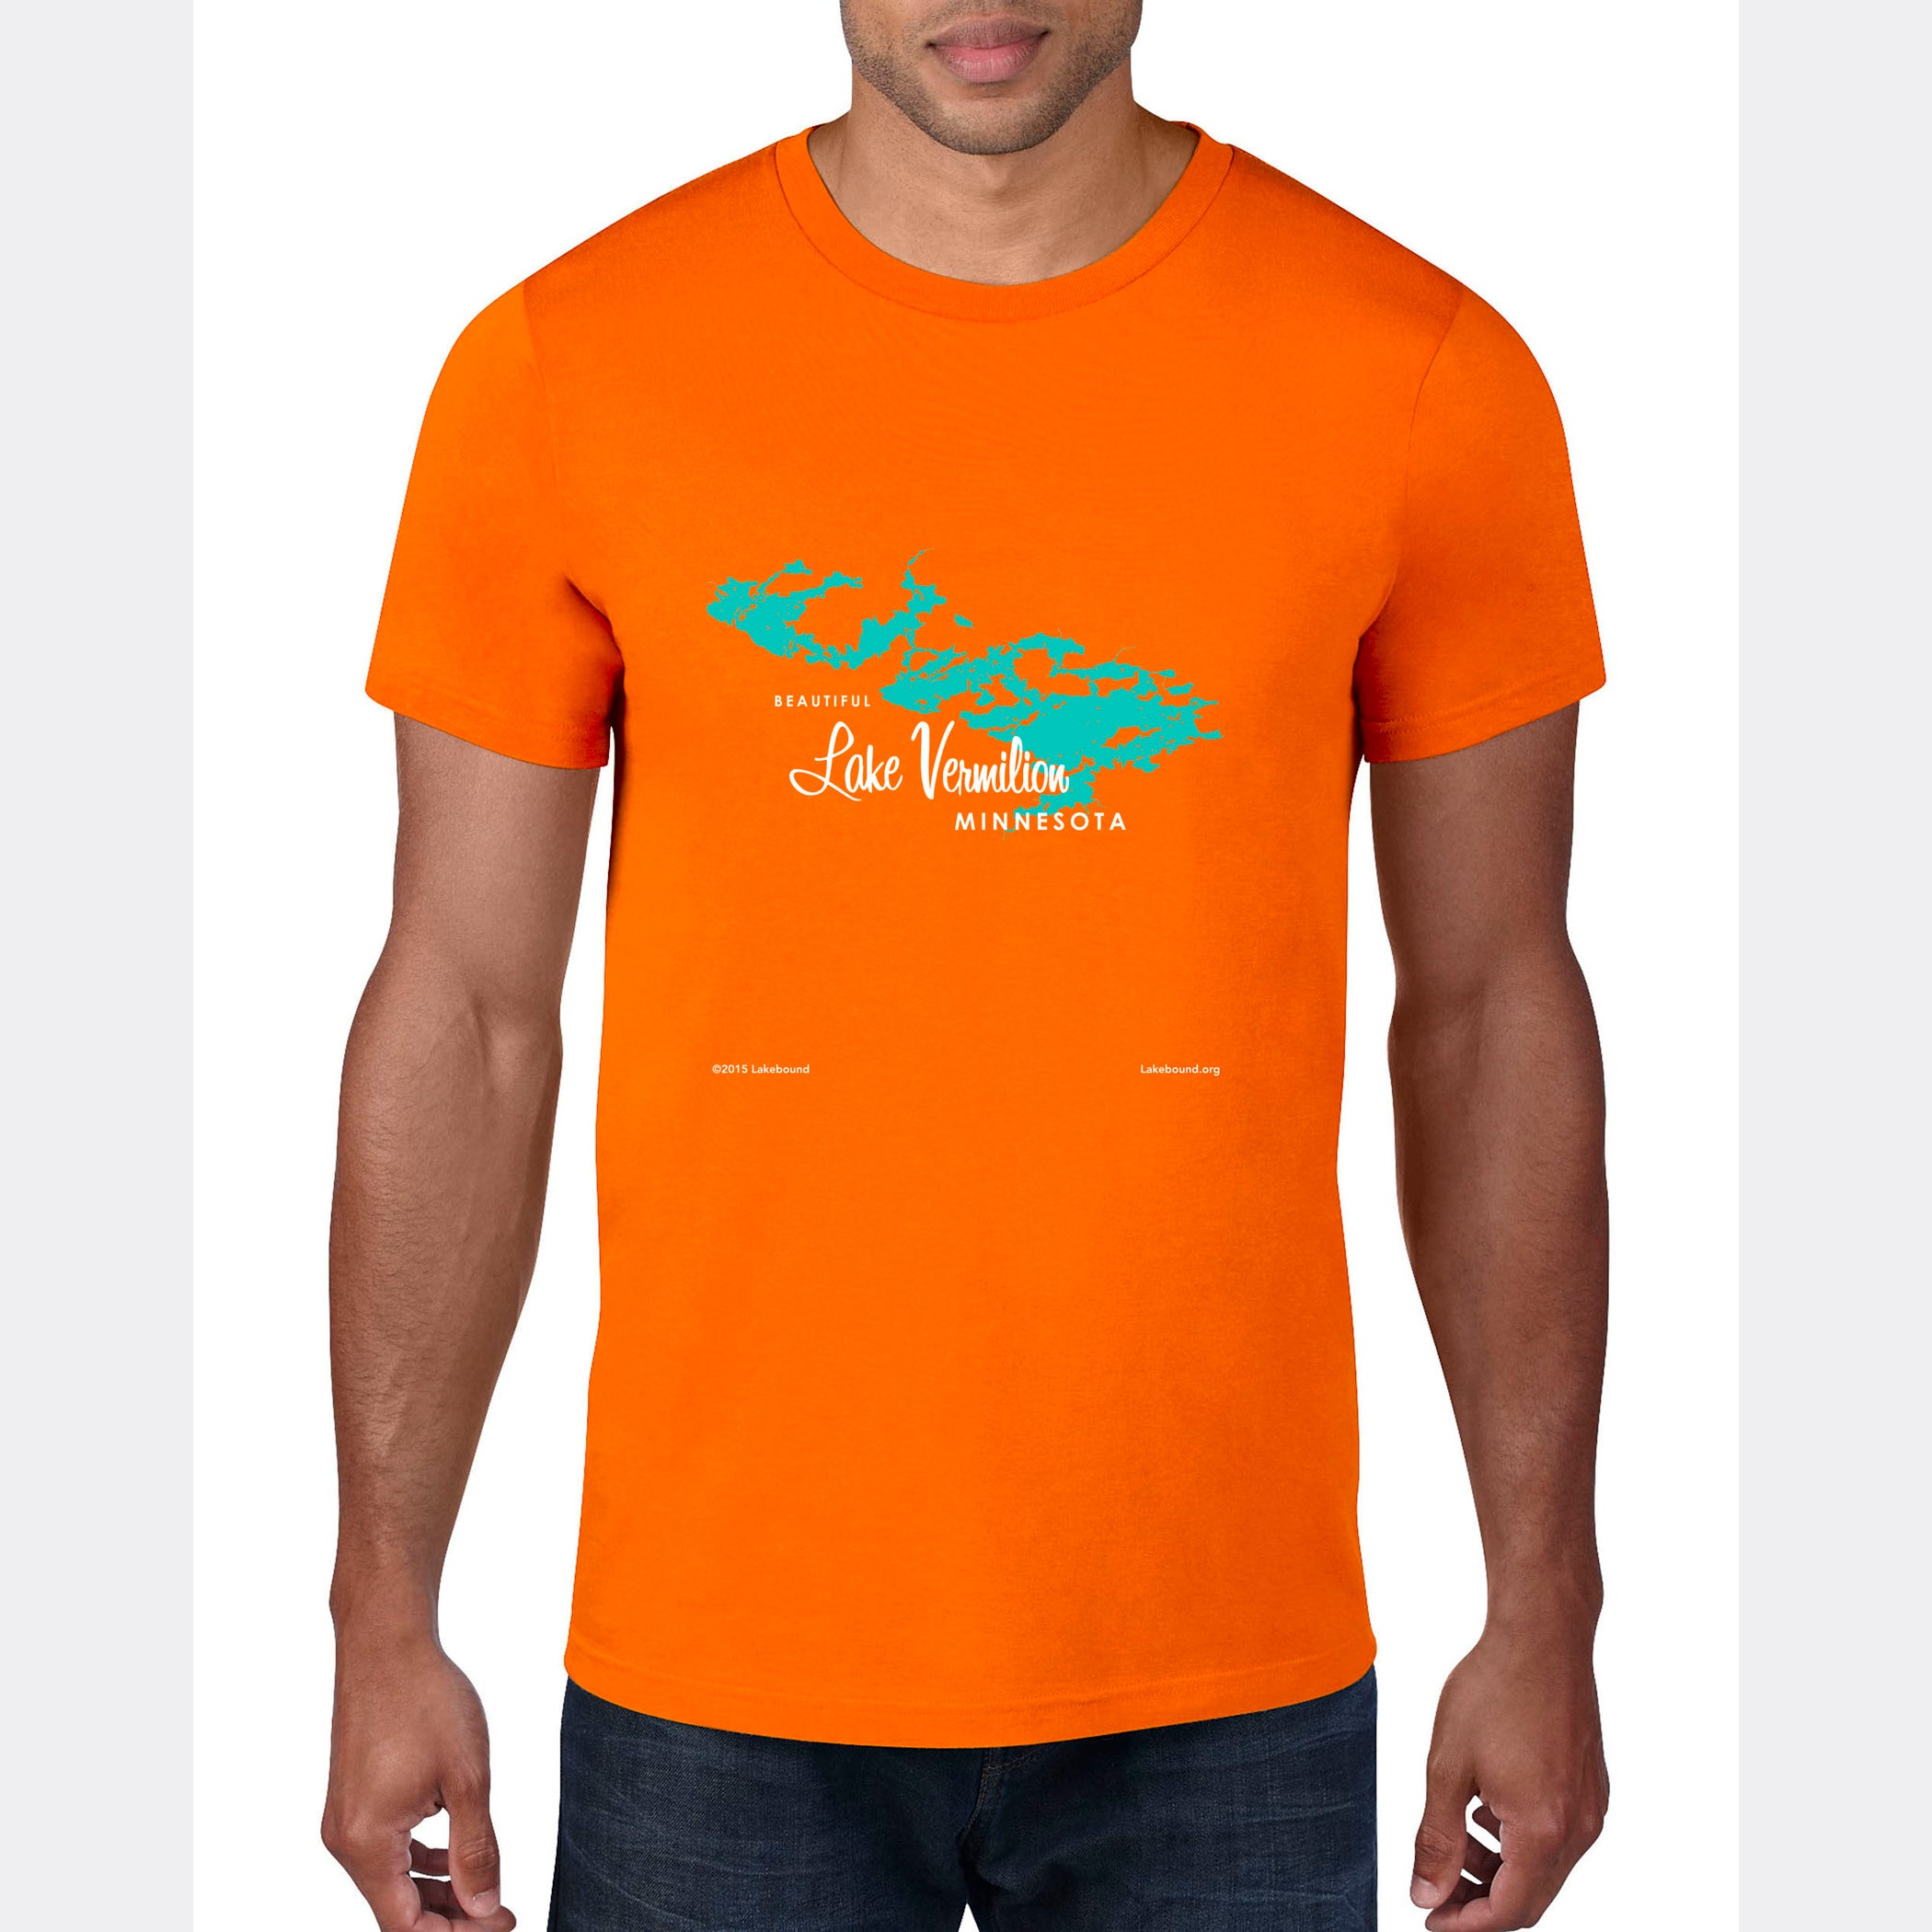 Lake Vermilion Minnesota, T-Shirt